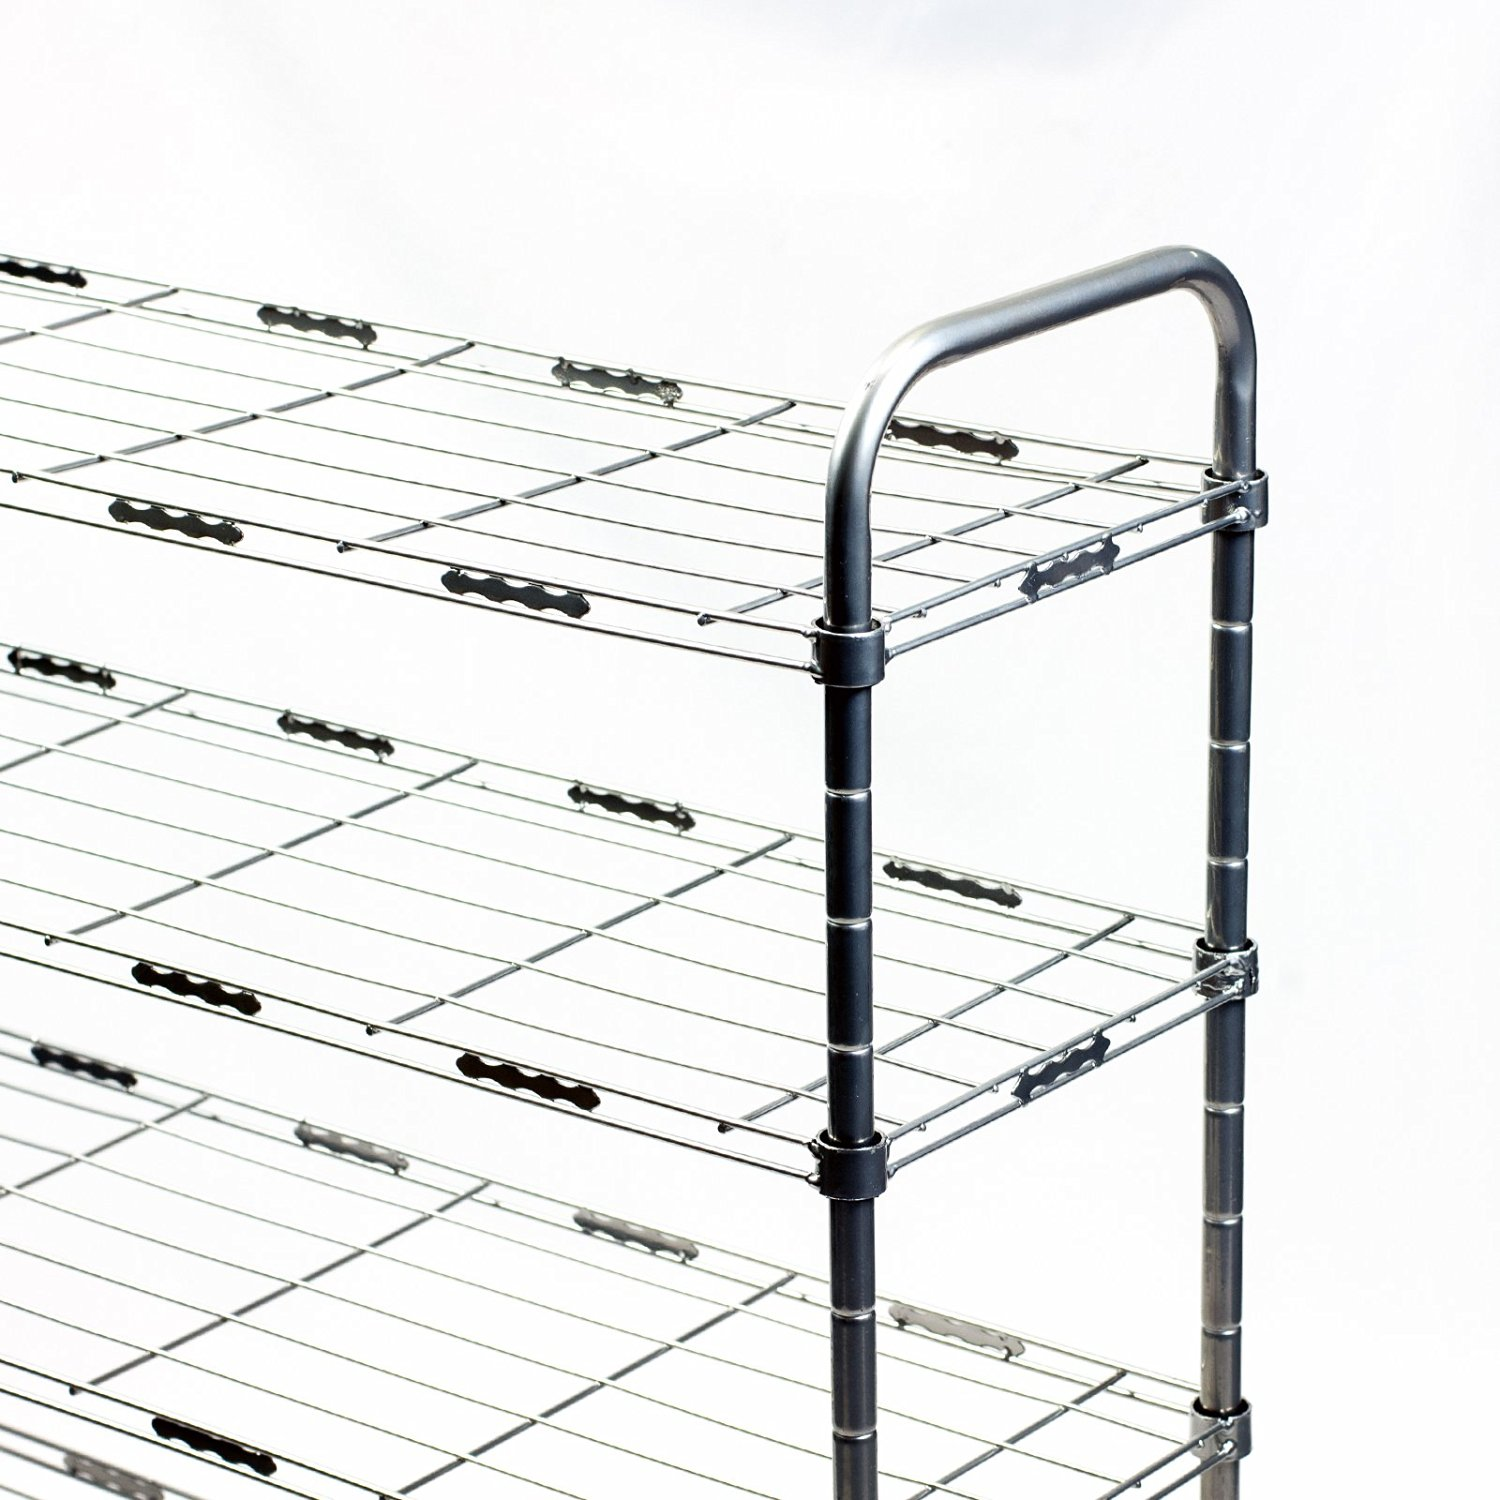 rack tools itm var storage garage shelving parts shelf warehouse workshop bin giantz organiser